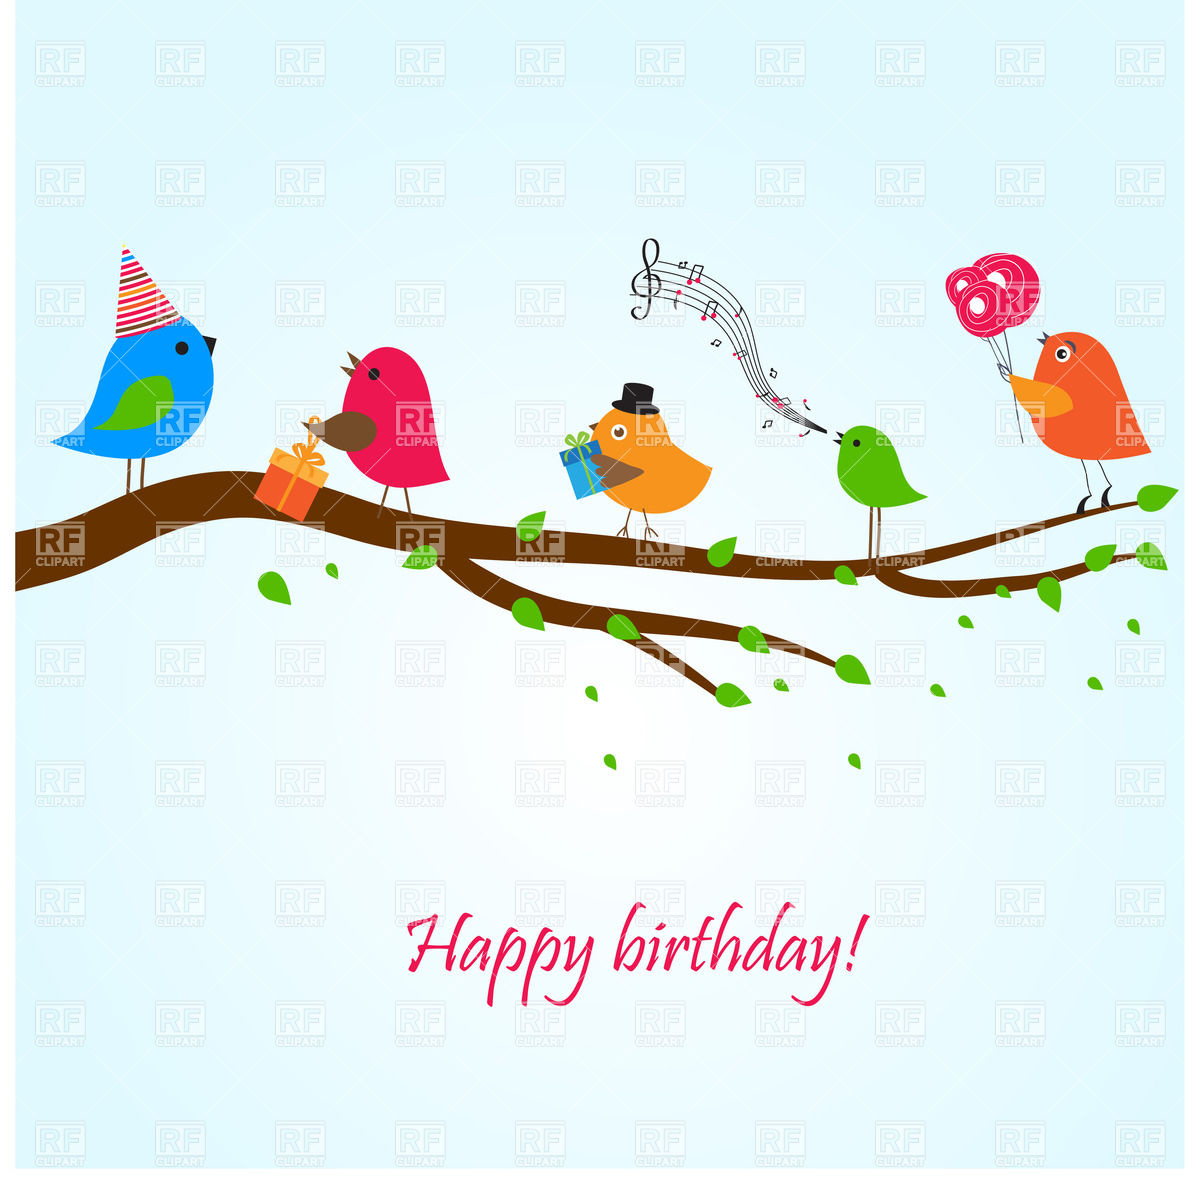 free clipart birthday wishes ; birthday-greeting-card-with-birds-on-the-branch-singing-songs-Download-Royalty-free-Vector-File-EPS-45001